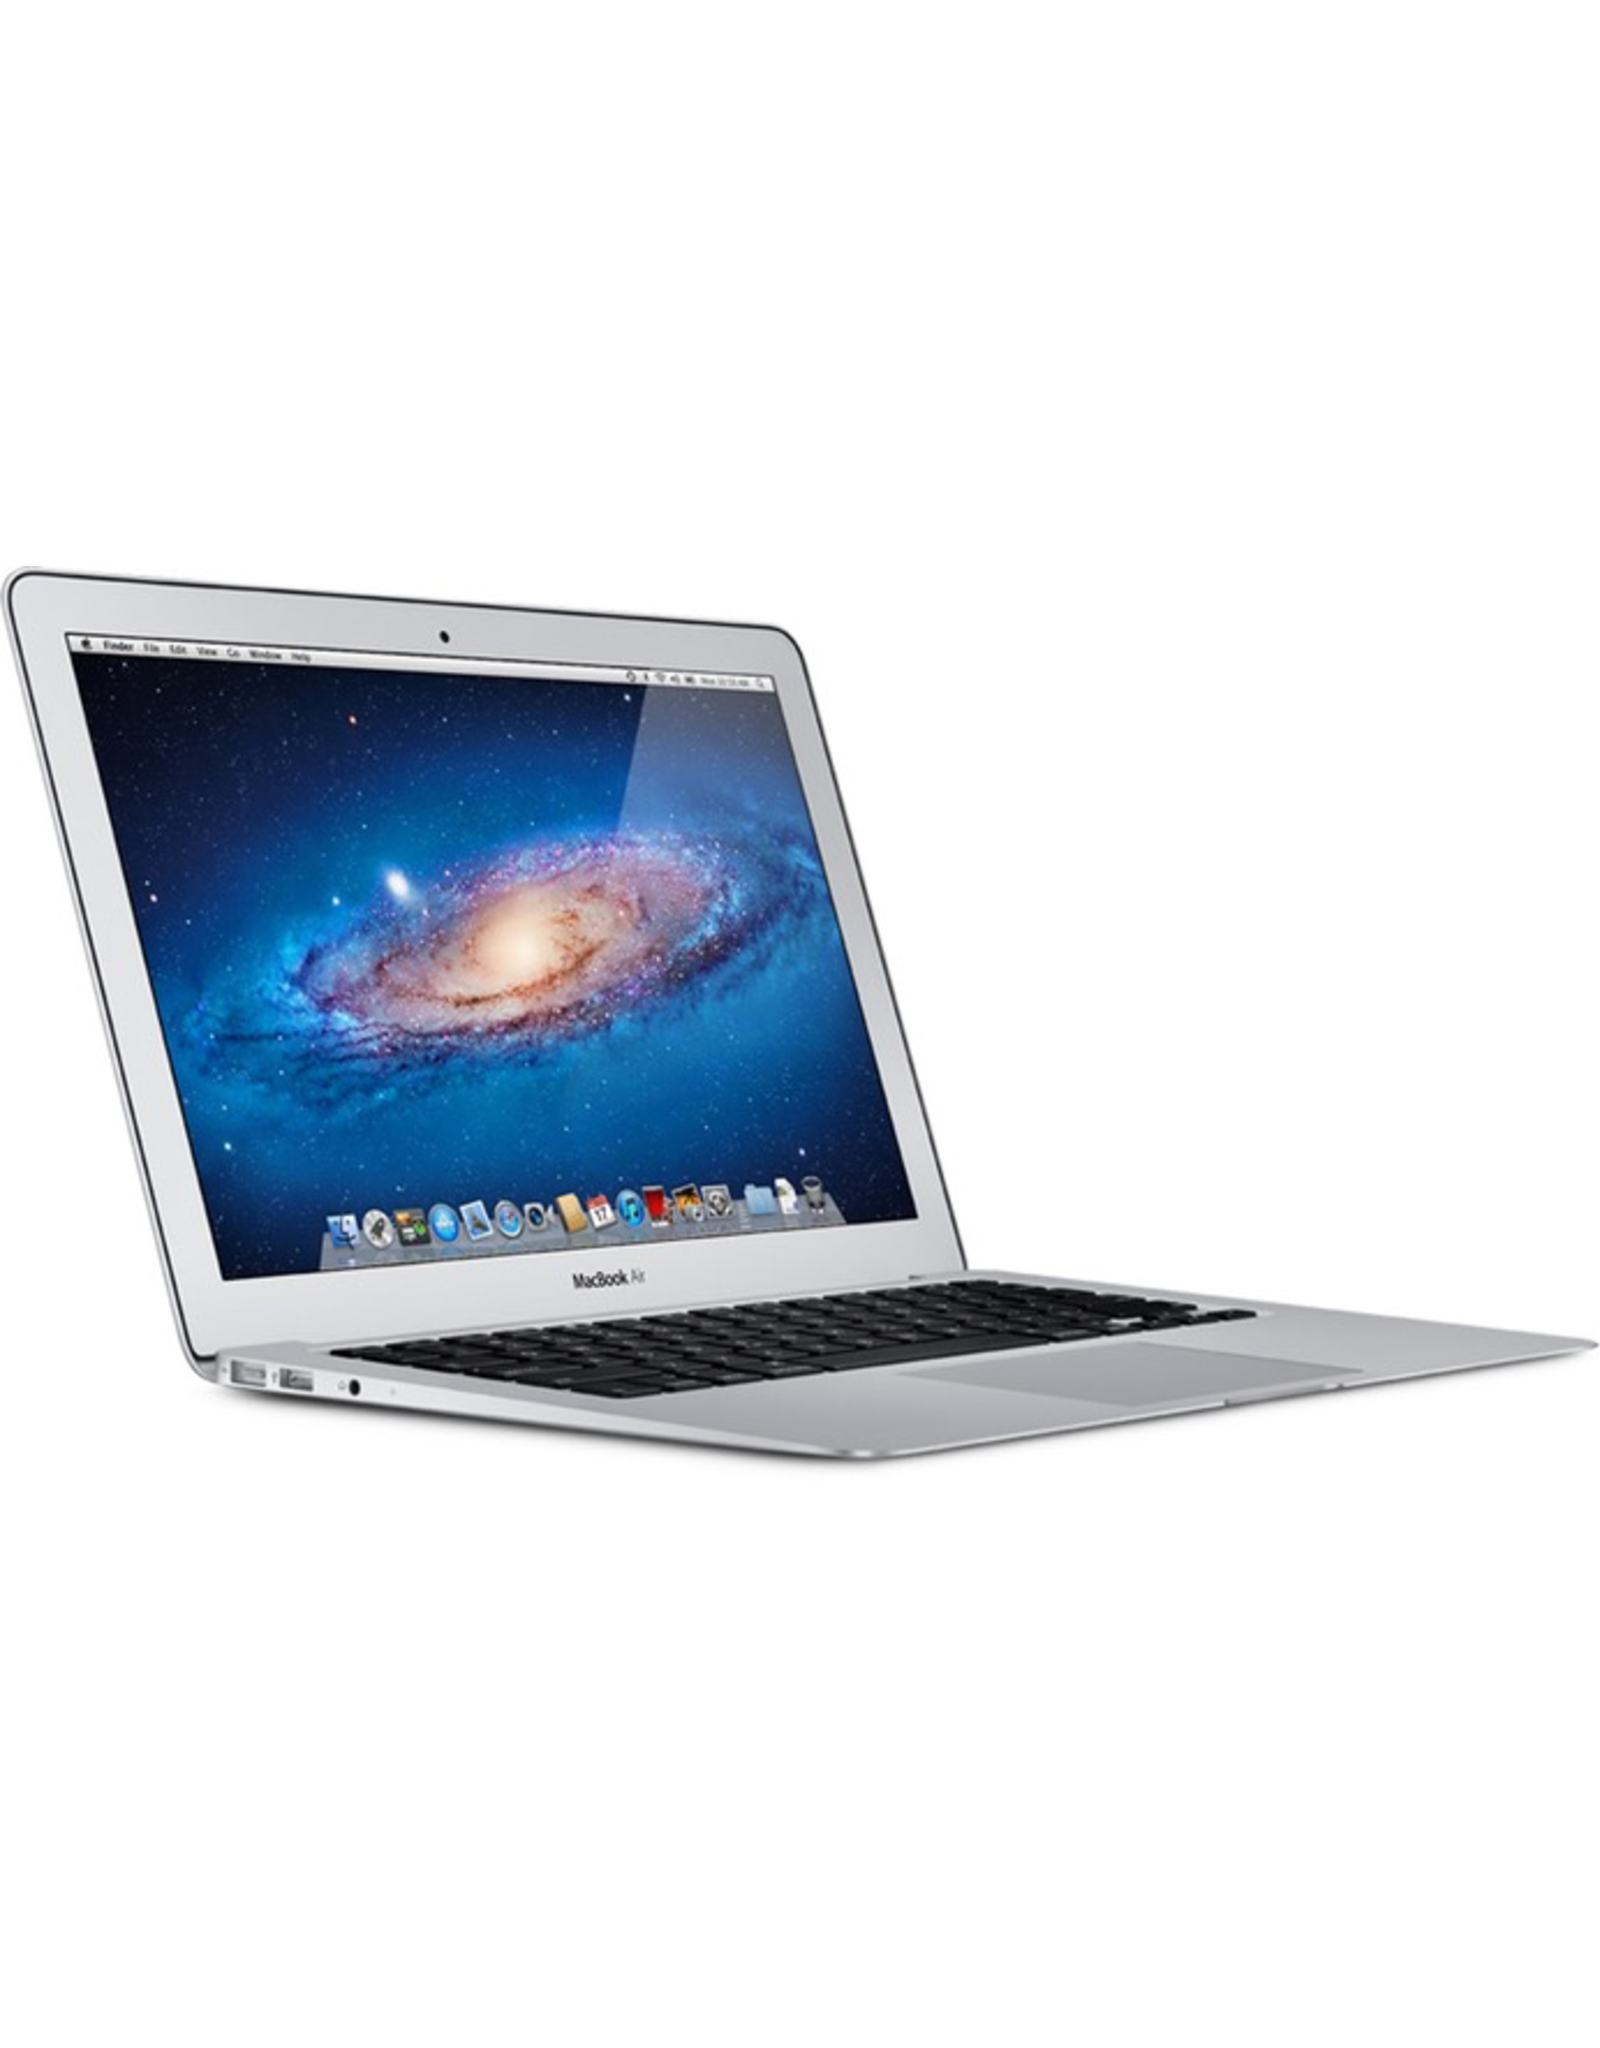 Apple Macbook Air (13-inch, Mid 2011) Intel Core i5 1.7Ghz / 120GB / 8GB RAM / 30 Day Exchange